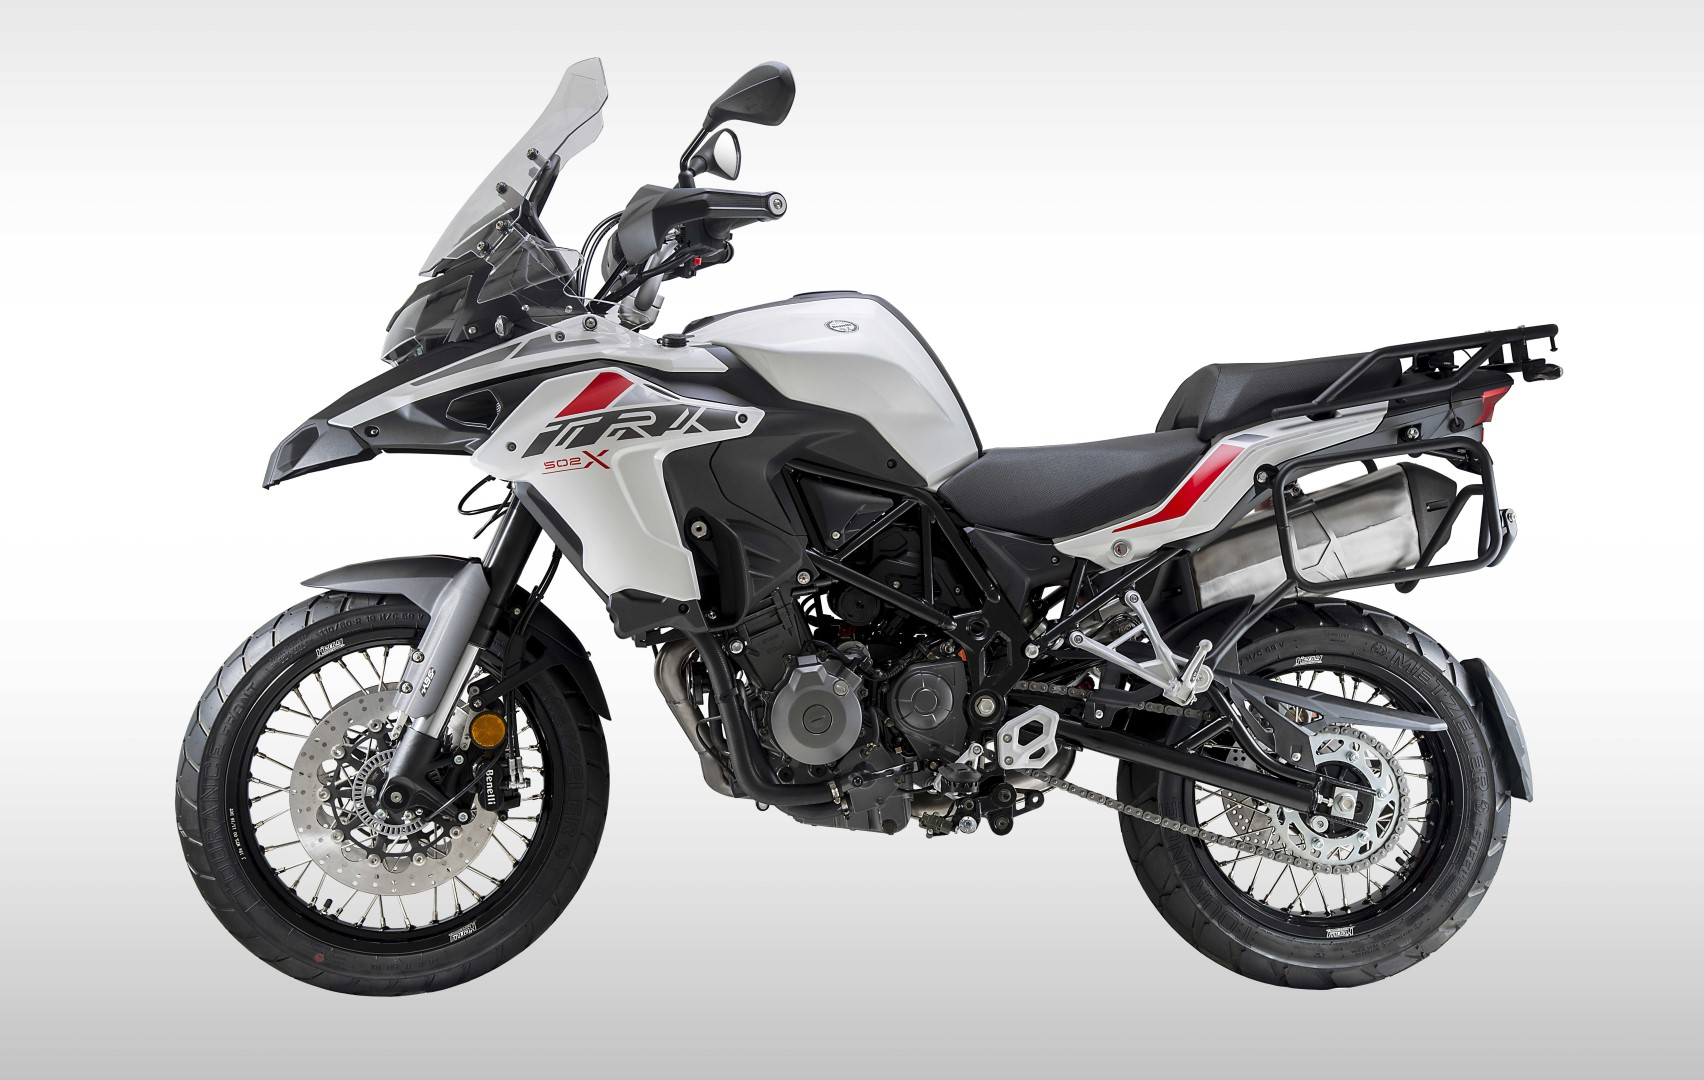 La Benelli TRK 502 X disponible a finales de junio